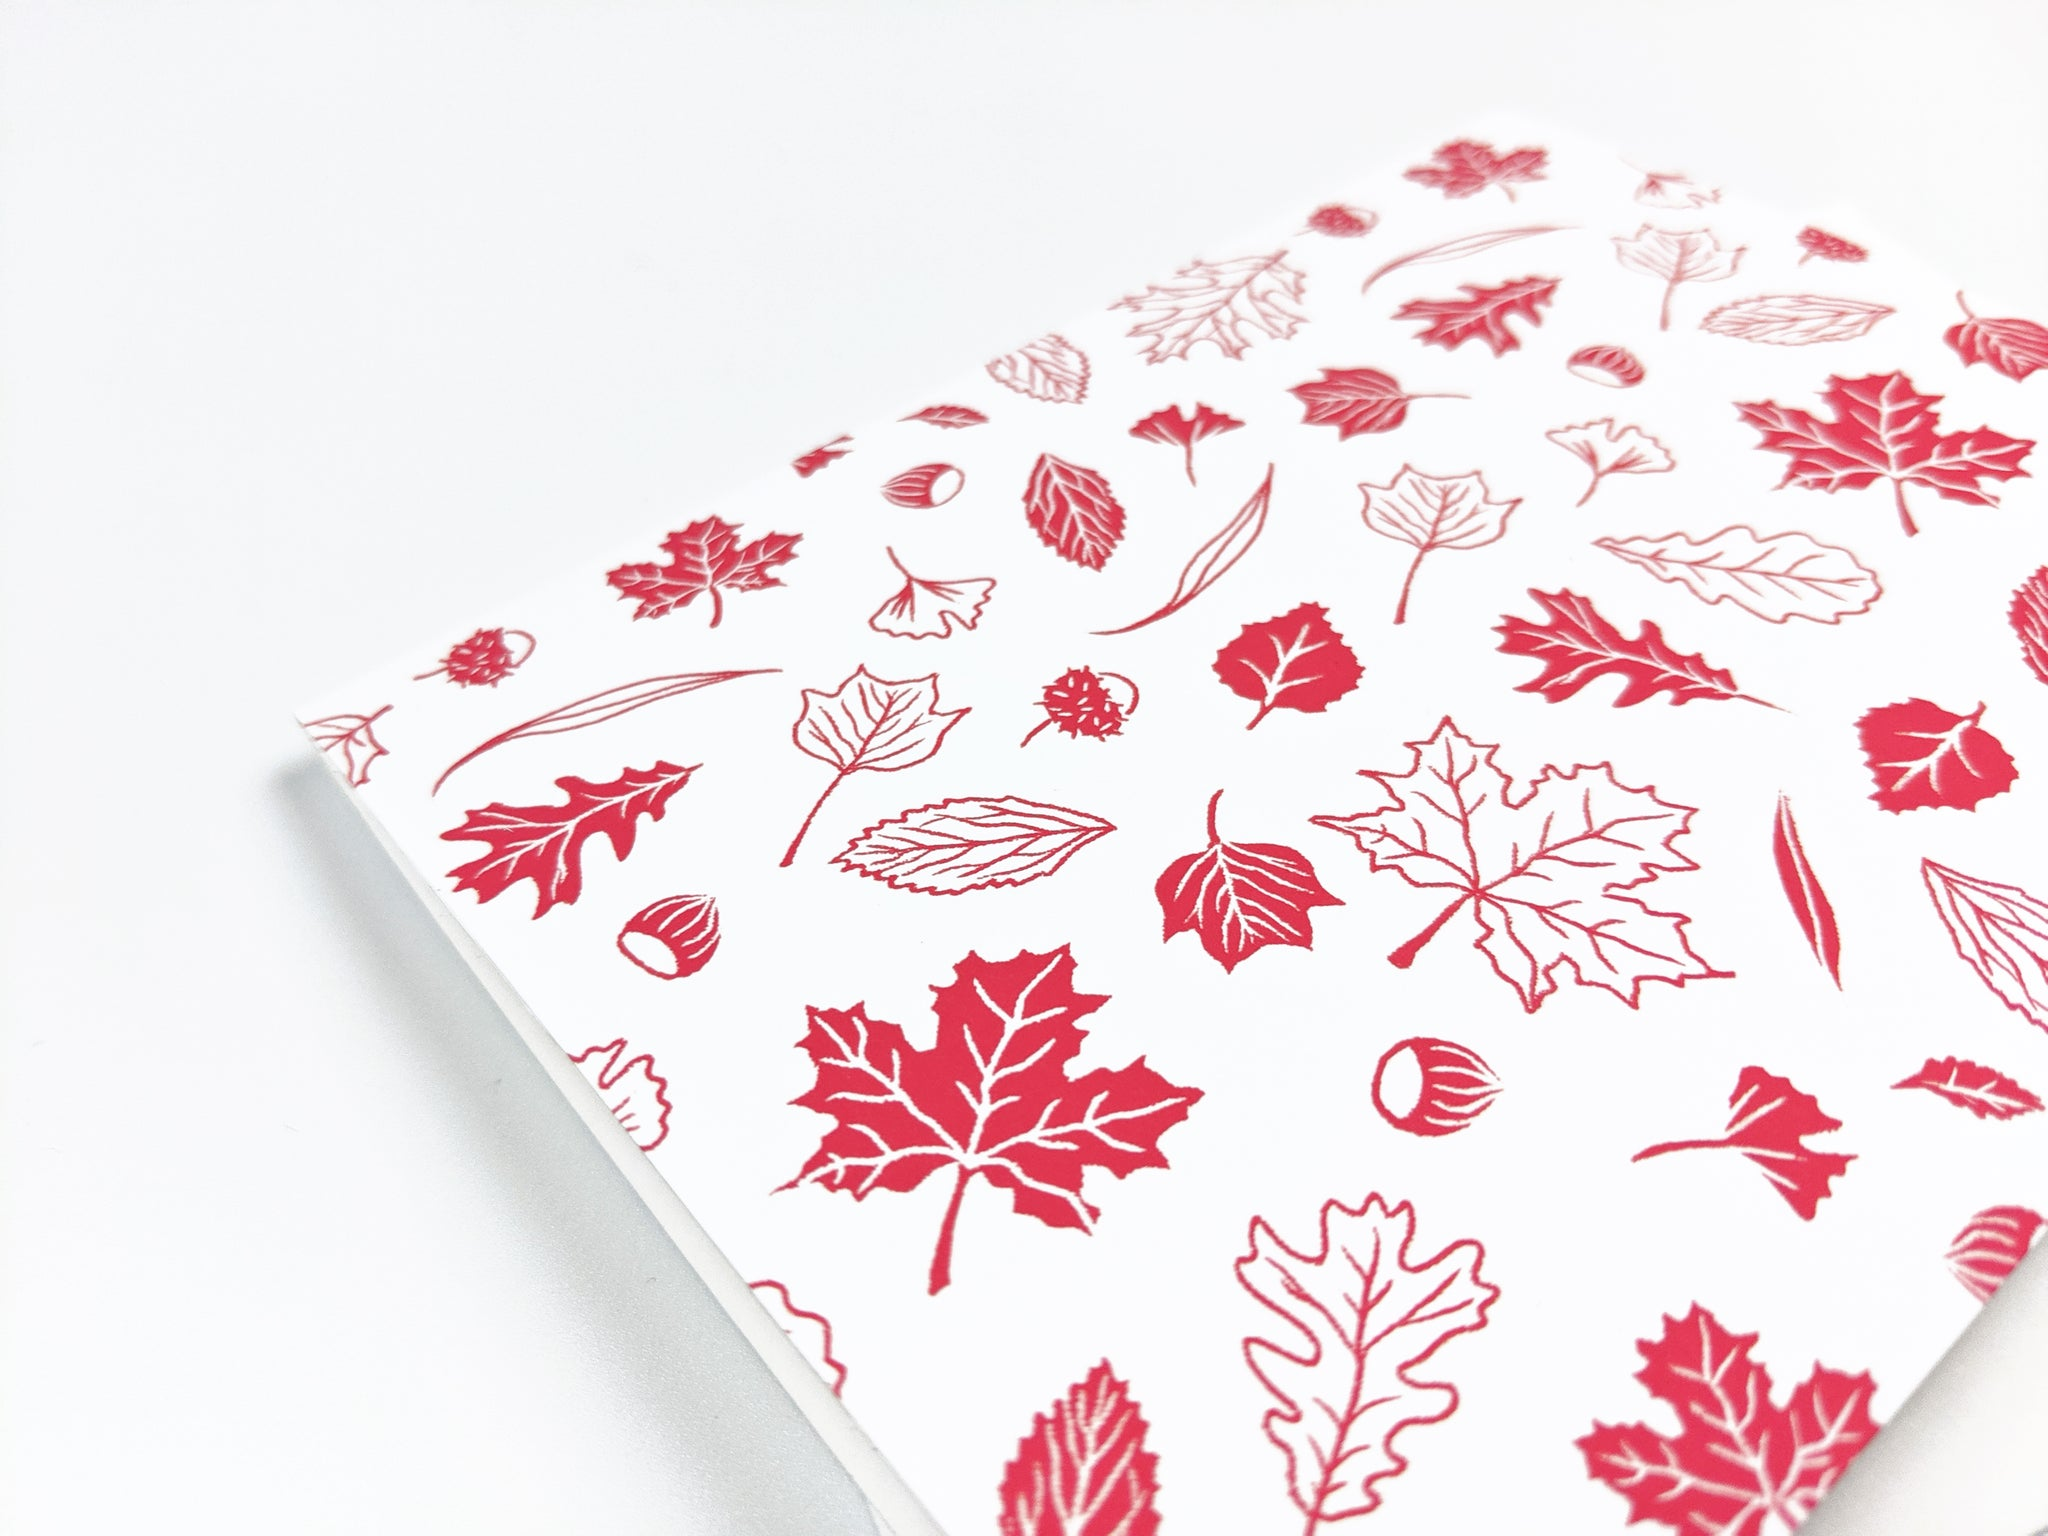 White & red leaves pattern - Holidays Card